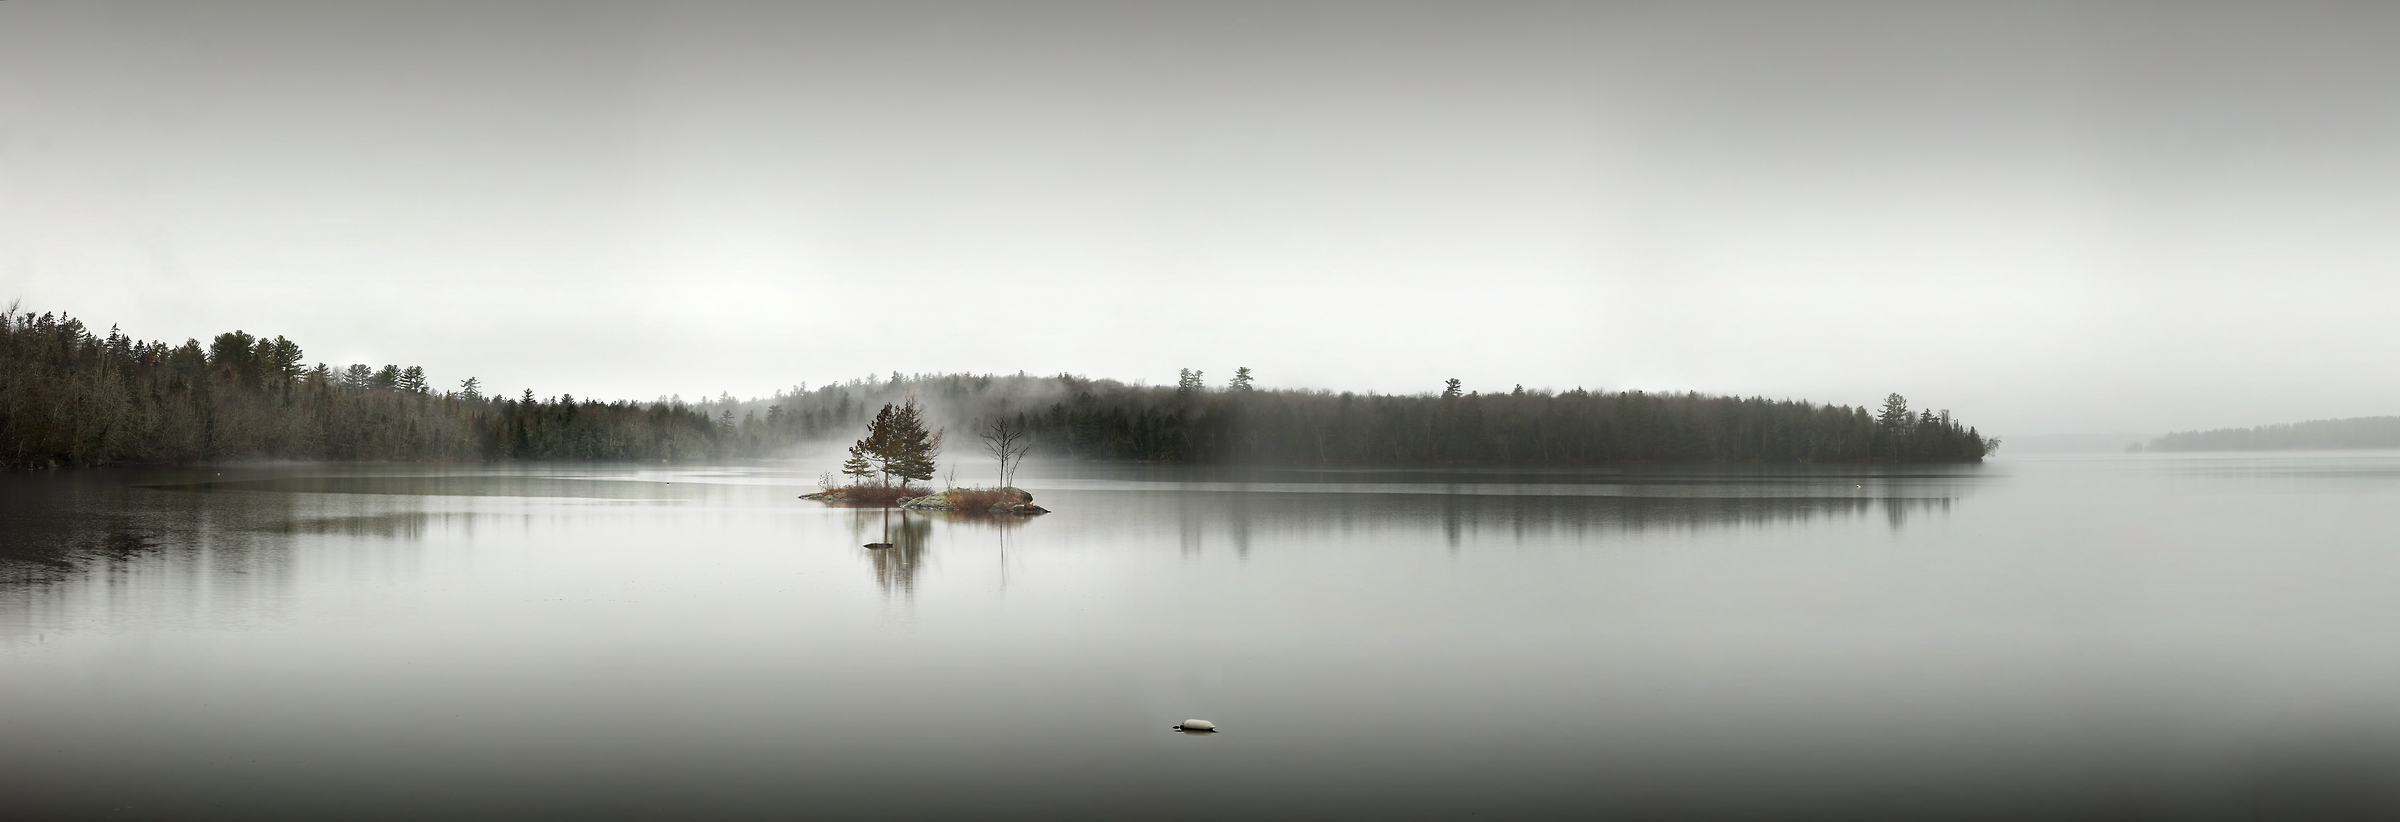 235 megapixels! A very high resolution, large-format VAST photo print of a peaceful lake scene; photograph created by Phil Crawshay in Umbagog Lake, New Hampshire